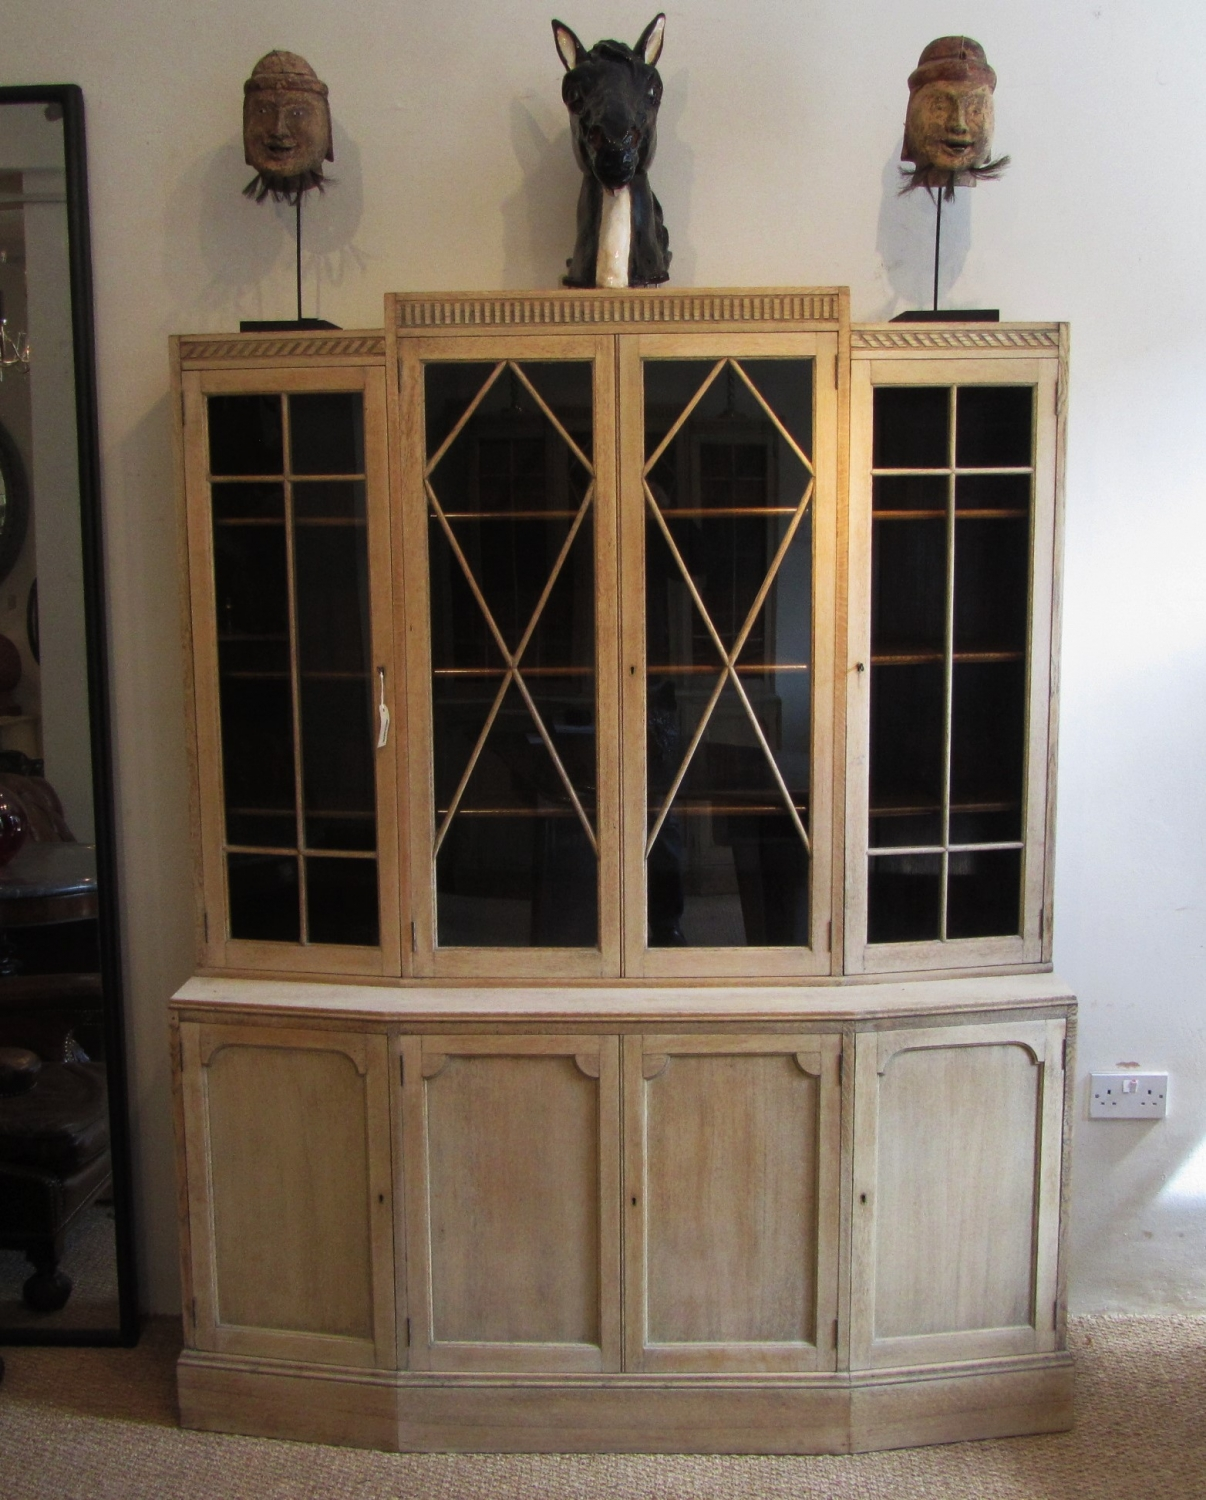 A pair of bookcases